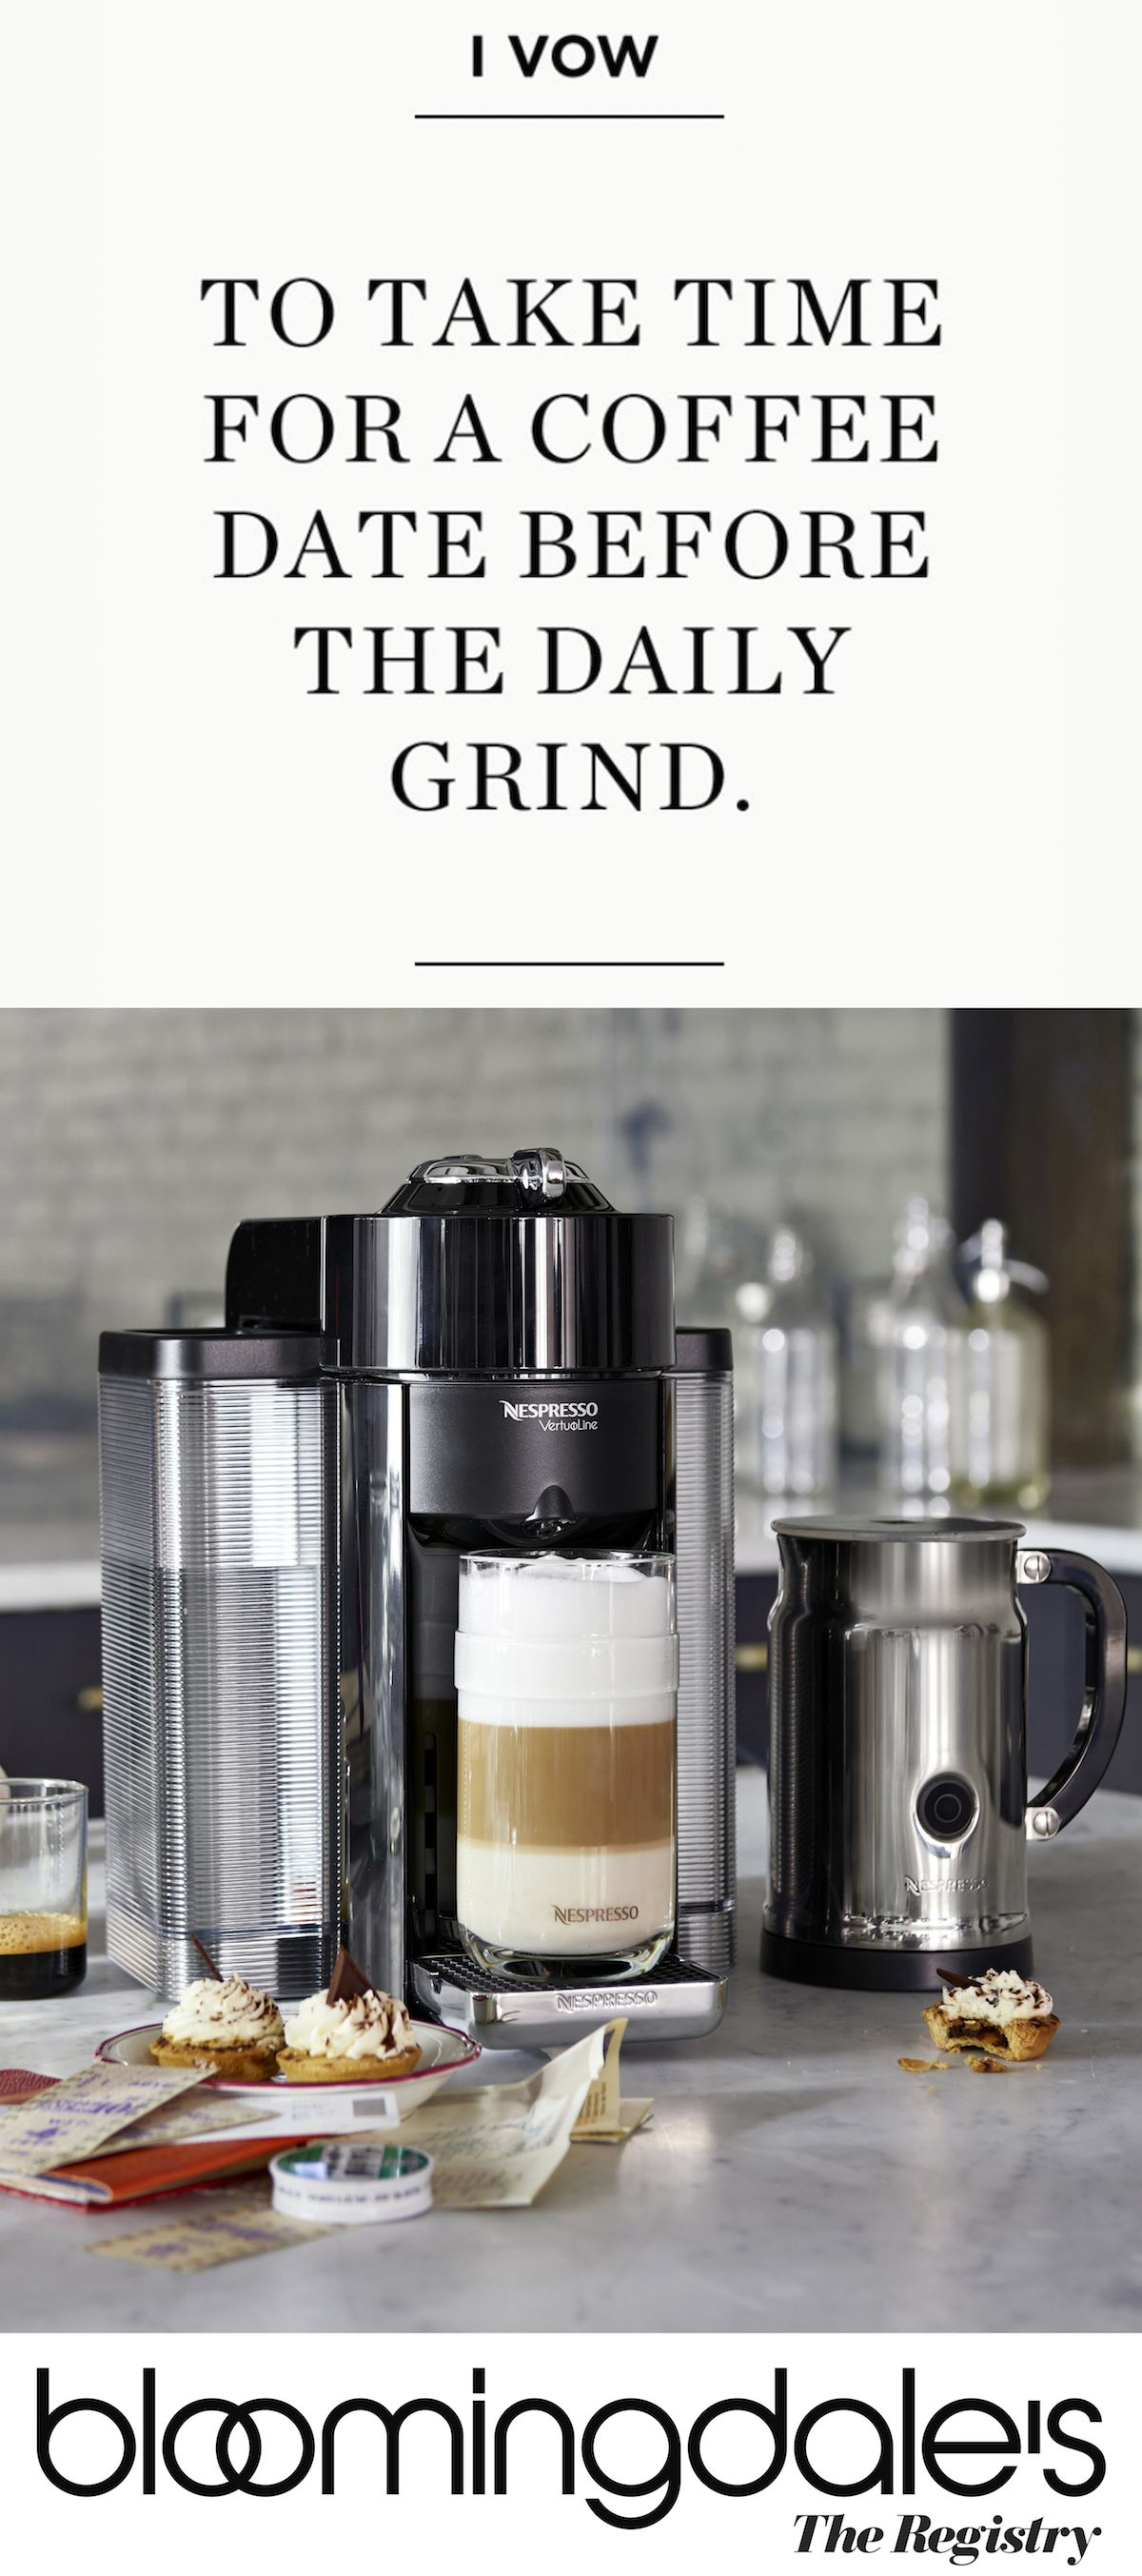 There's no excuse to skip a cup when the Nespresso Evoluo